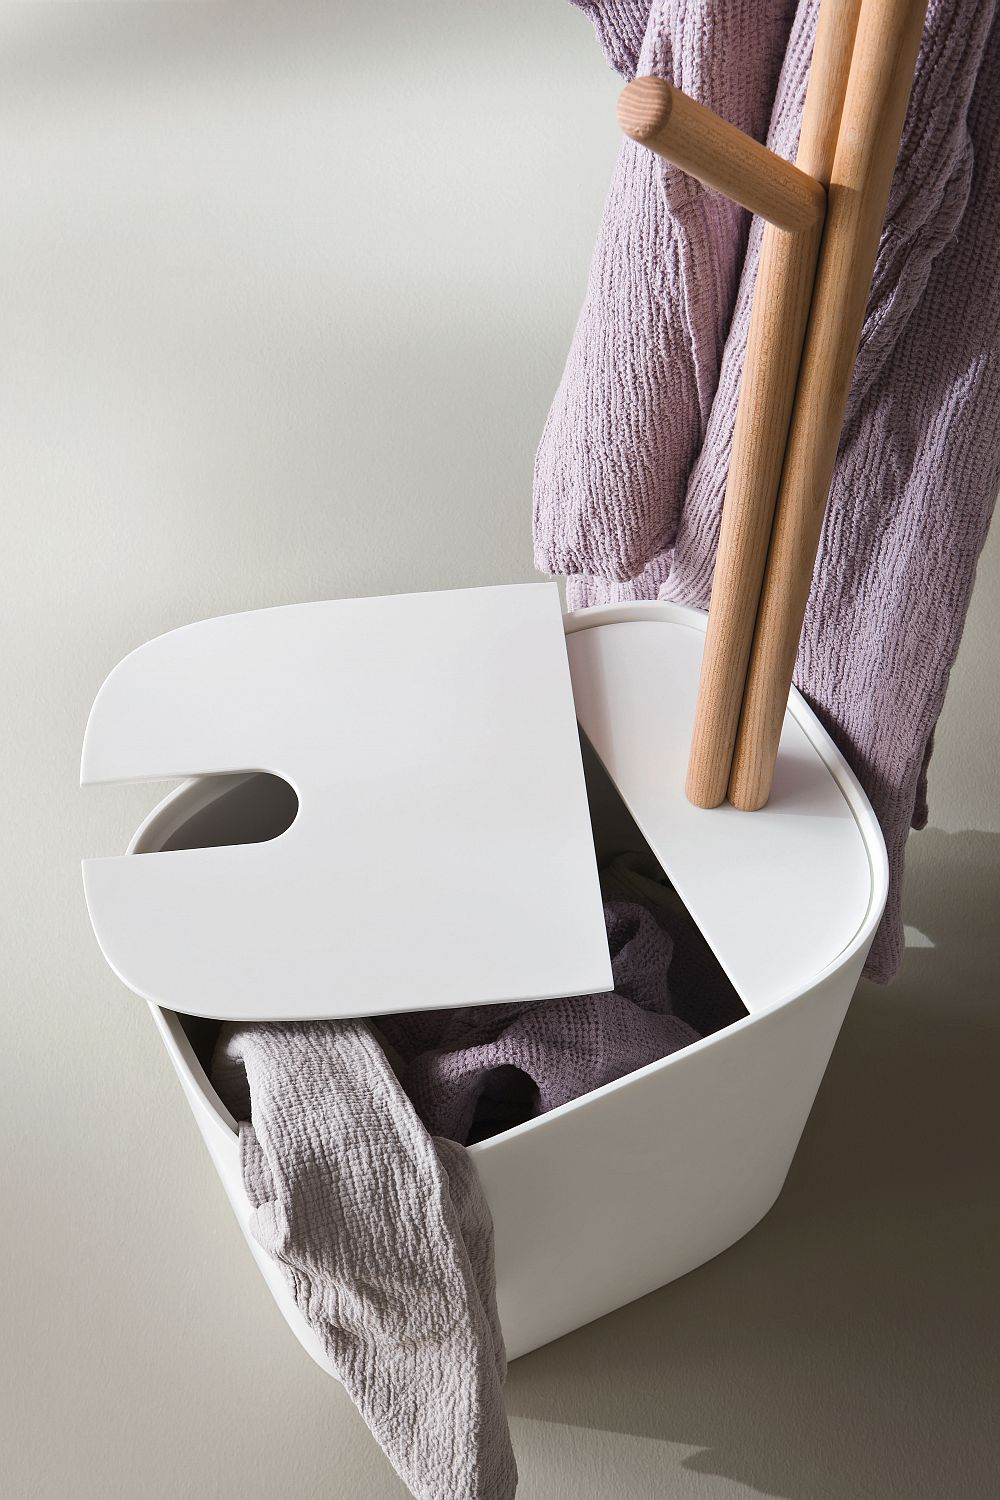 Uber-cool contemporary laundry basket